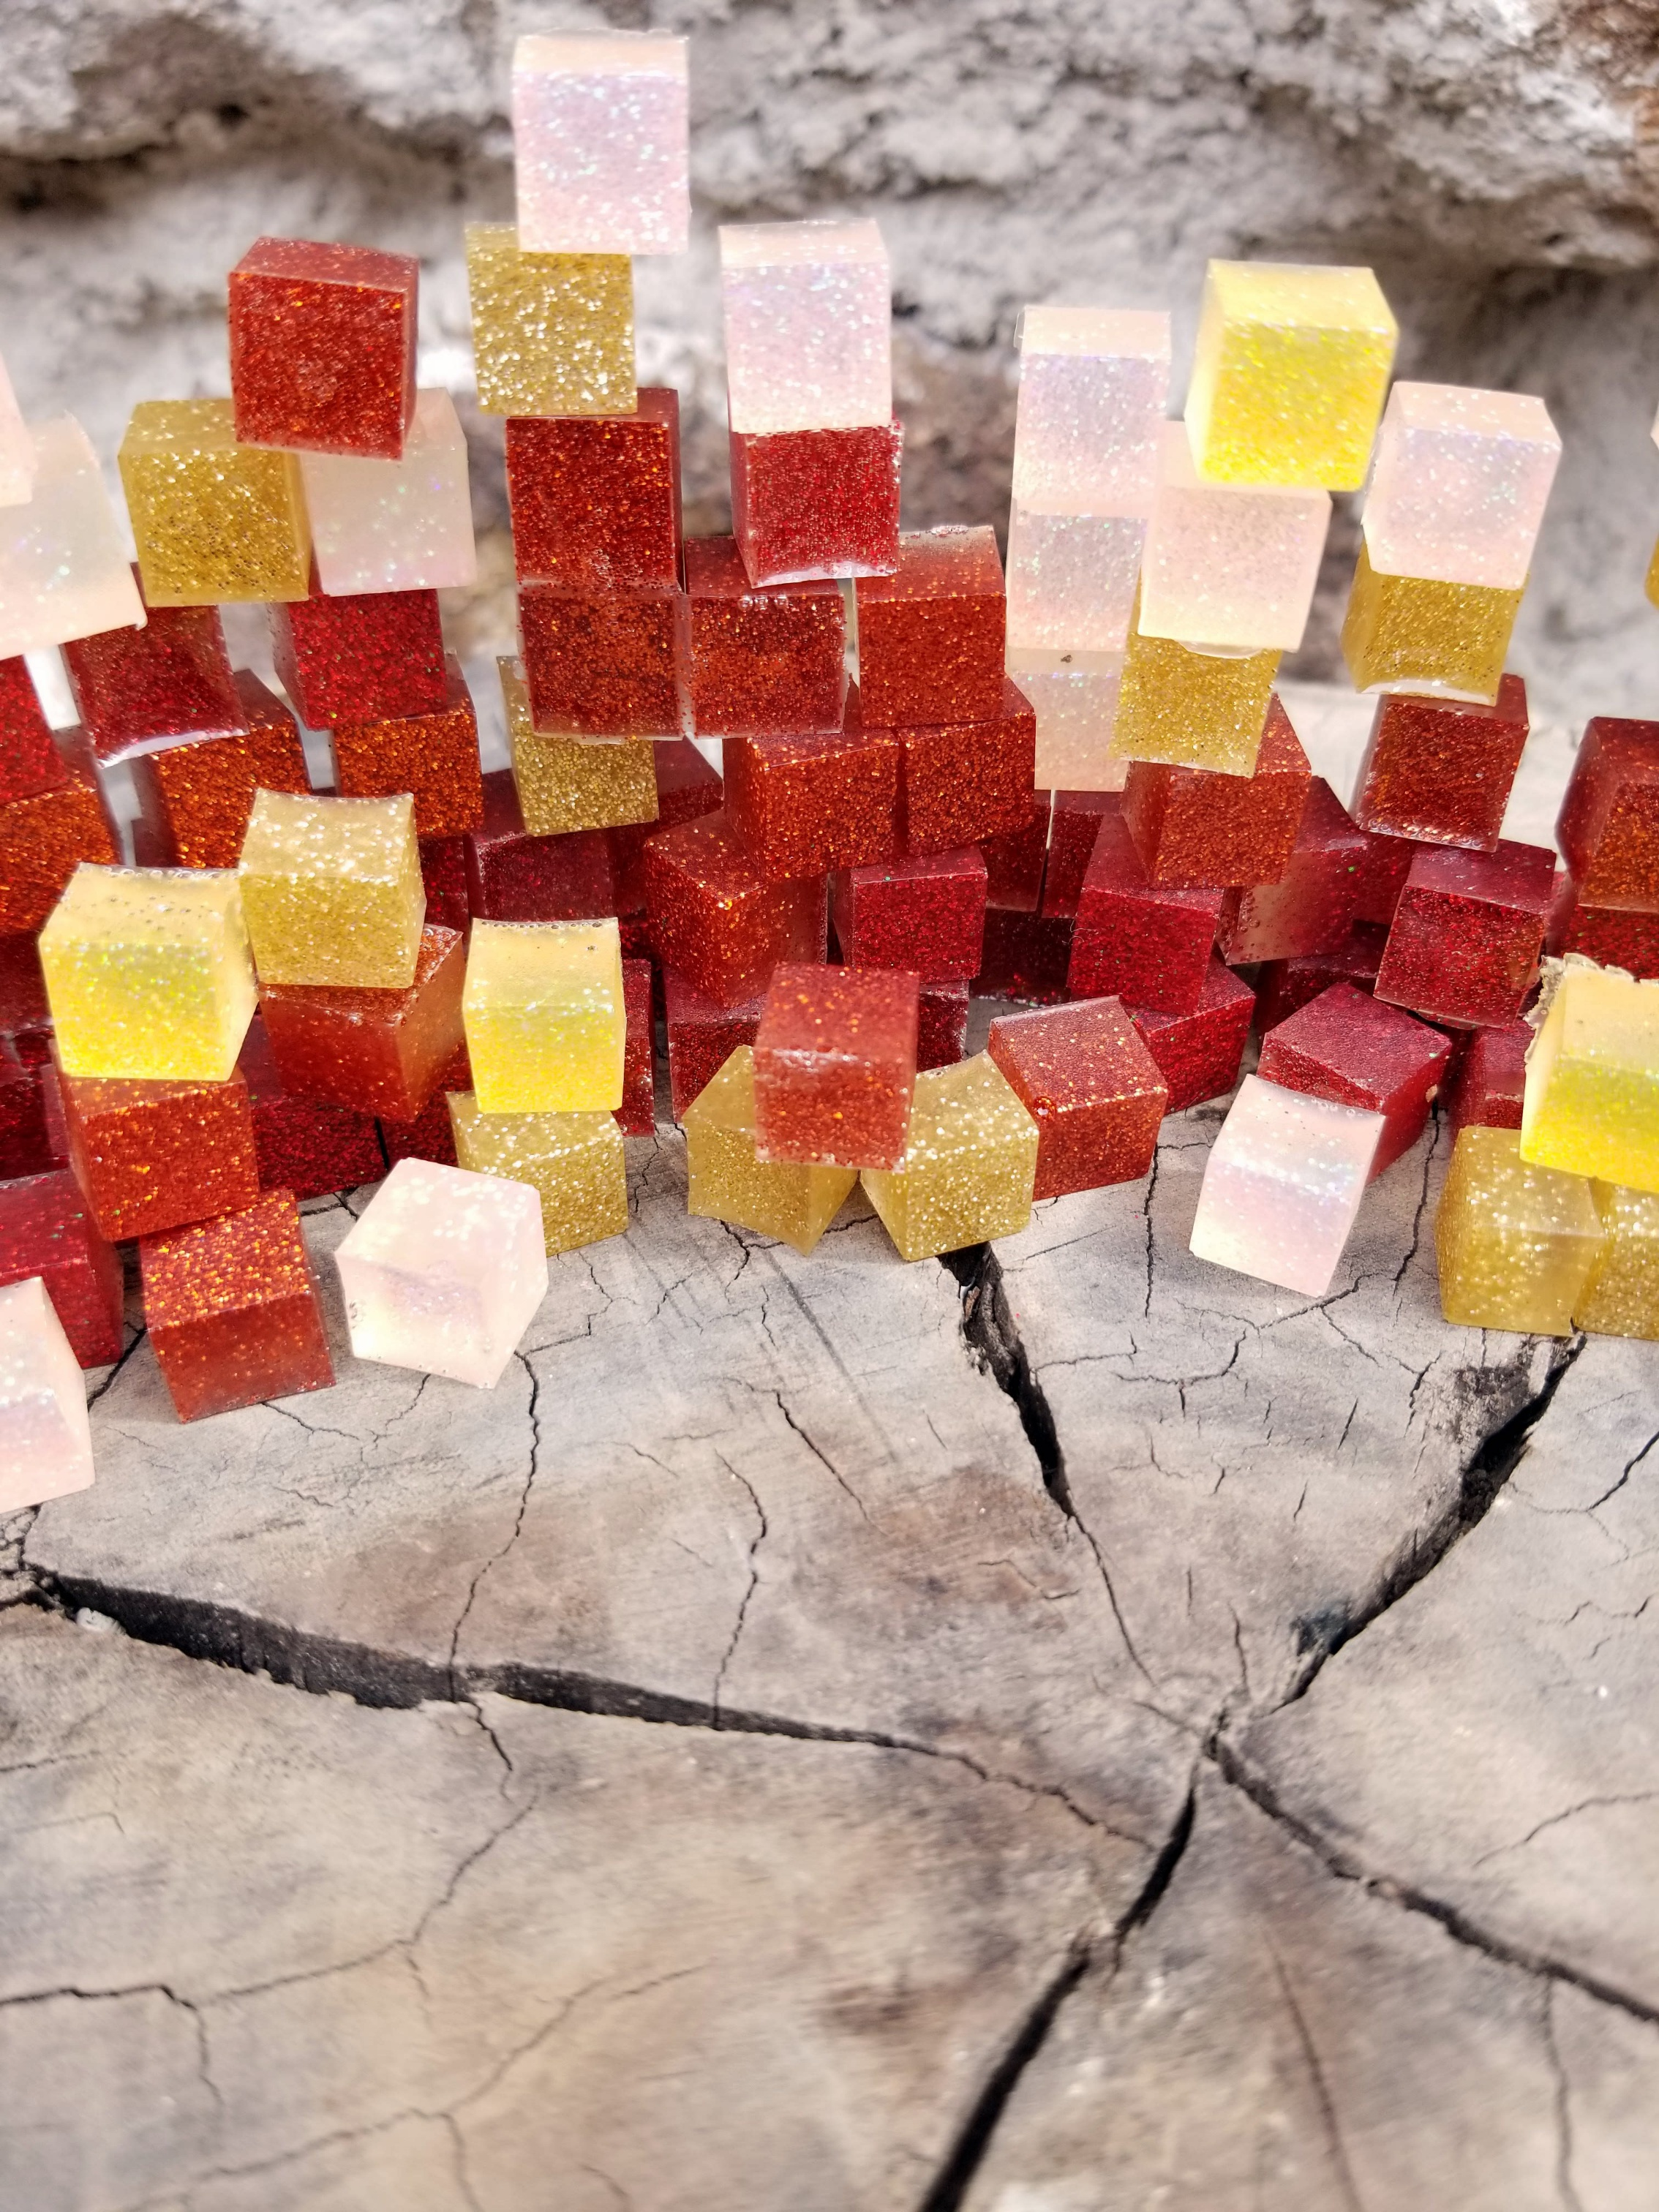 Glitter infused resin cubes stacked and good enough to eat in San Miguel de Allende, Mexico, January 2018.